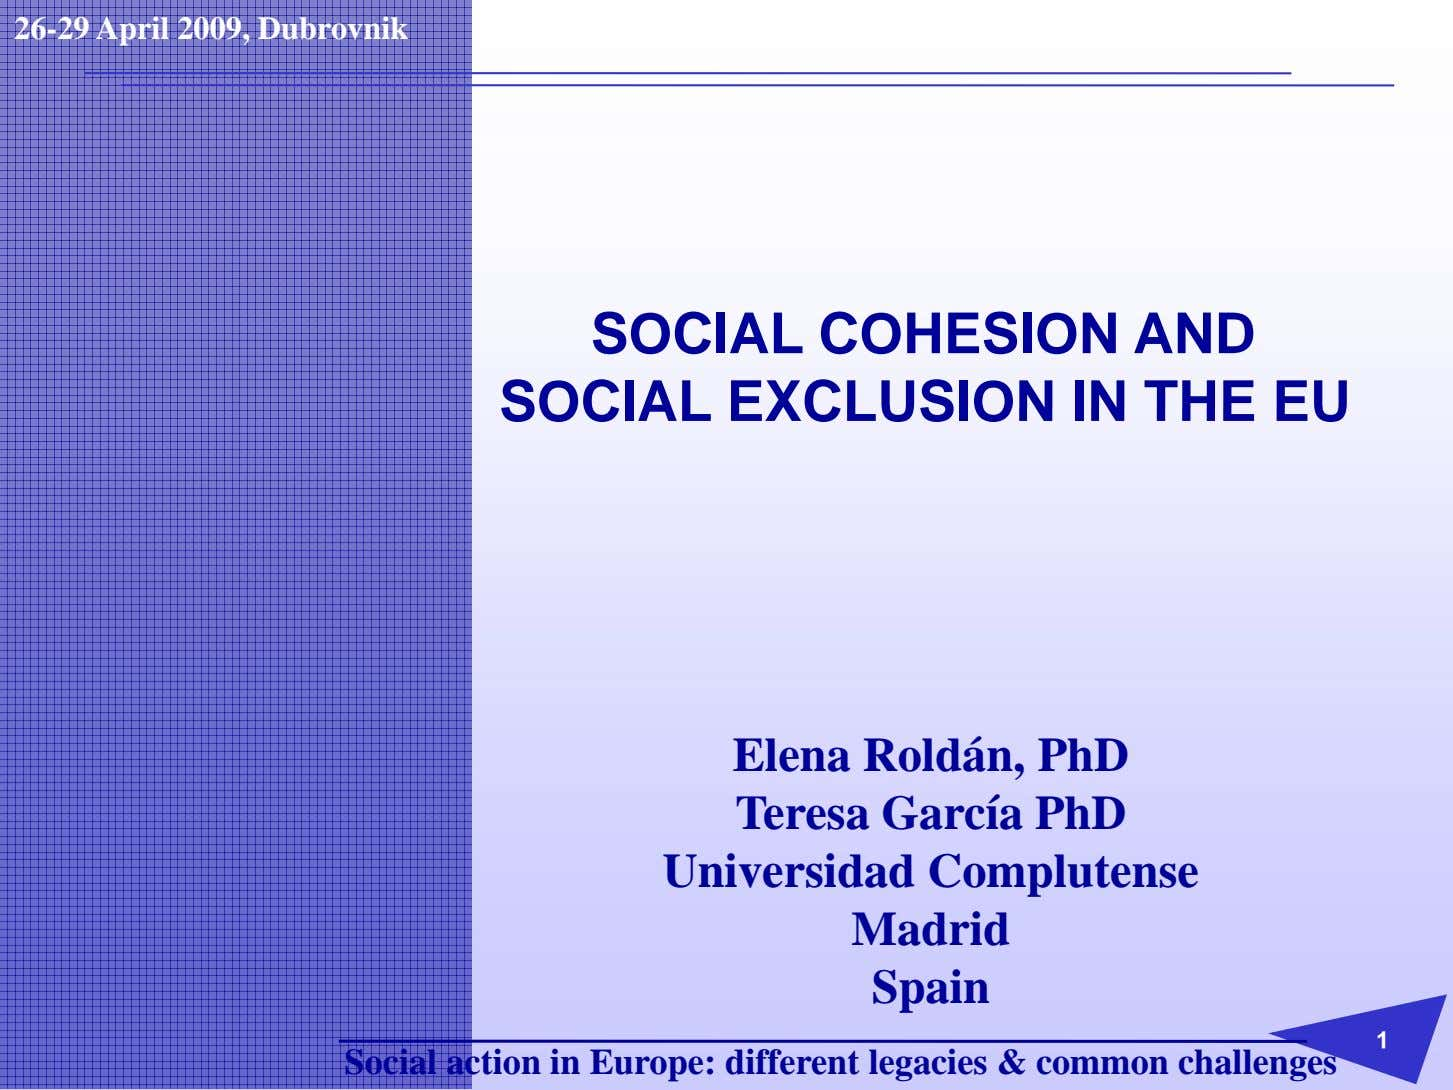 26-29 April 2009, Dubrovnik SOCIAL COHESION AND SOCIAL EXCLUSION IN THE EU Elena Roldán, PhD